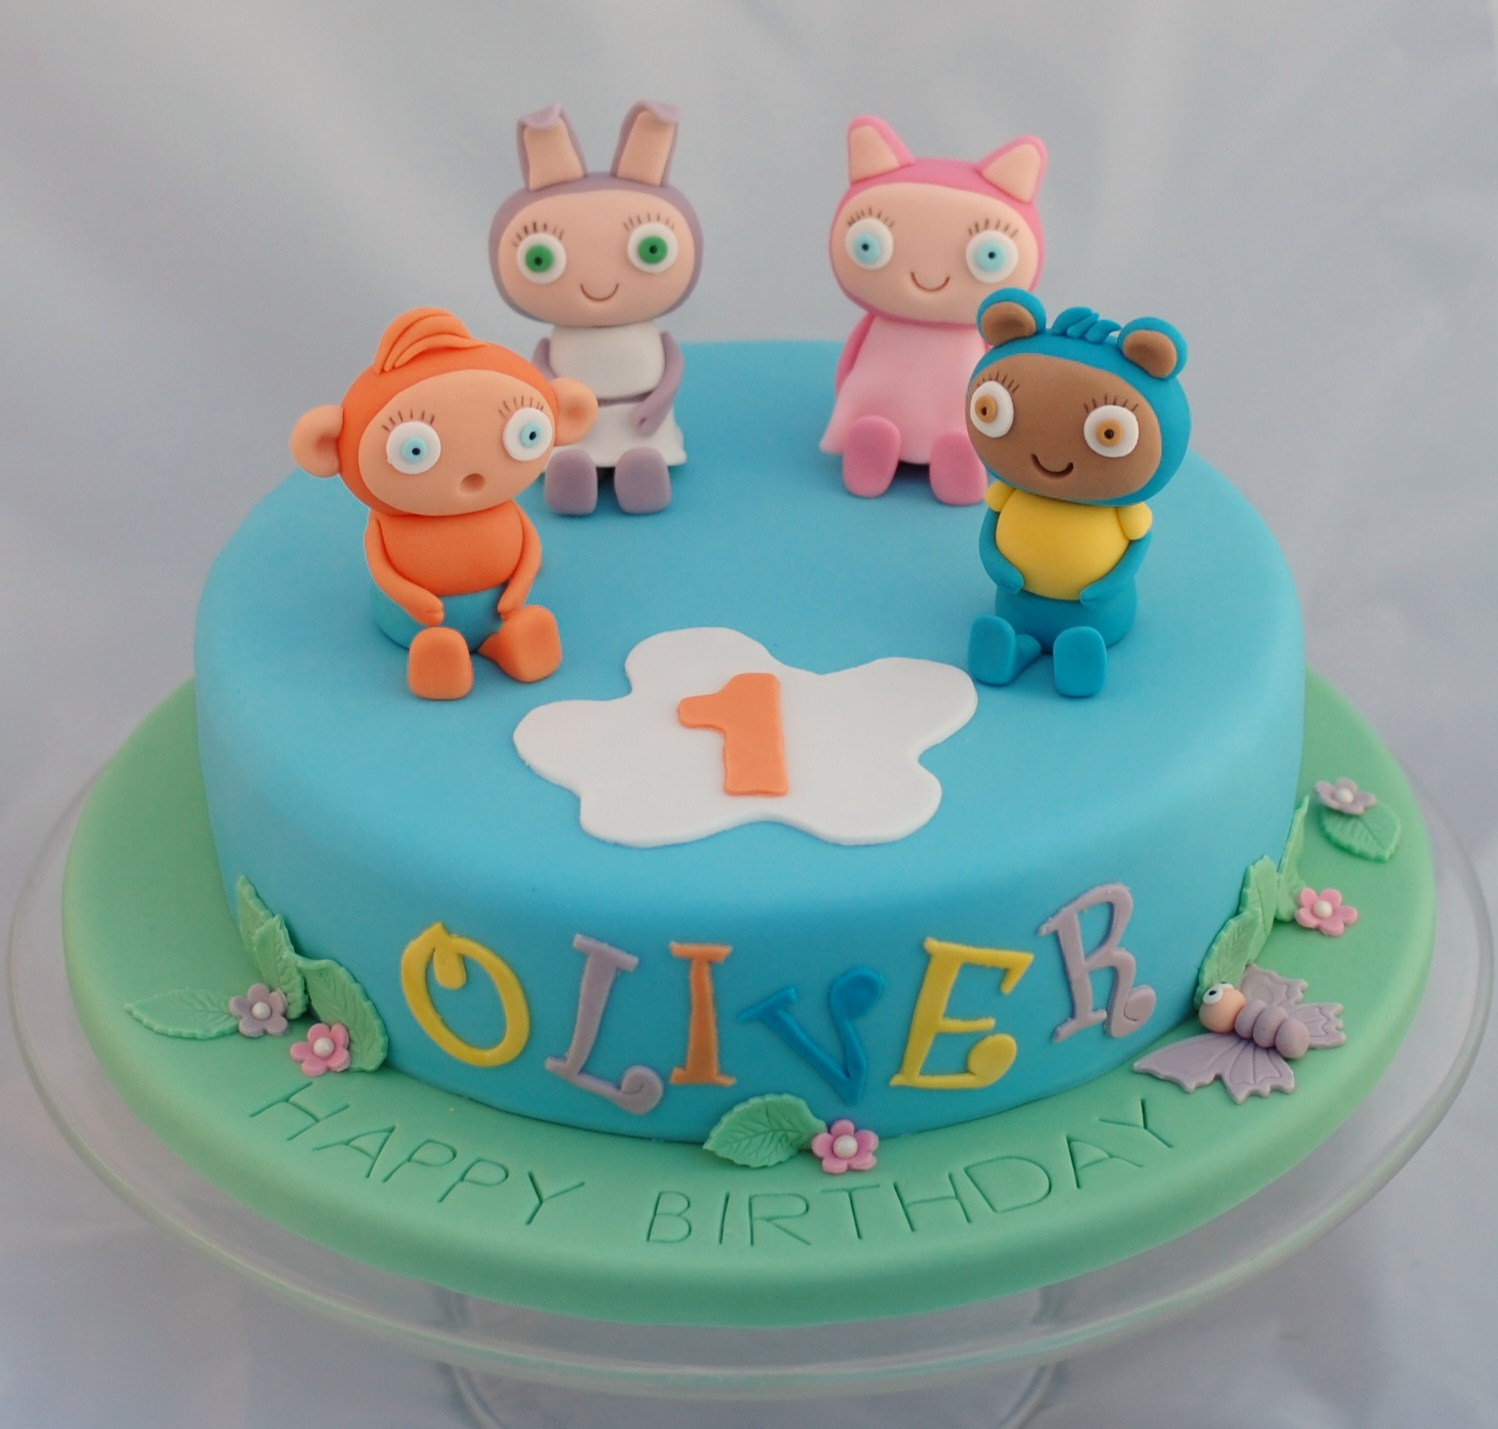 Groovy Waybuloo And Moshi Monsters Birthday Cakes Vanilla Frost Cakes Funny Birthday Cards Online Inifofree Goldxyz